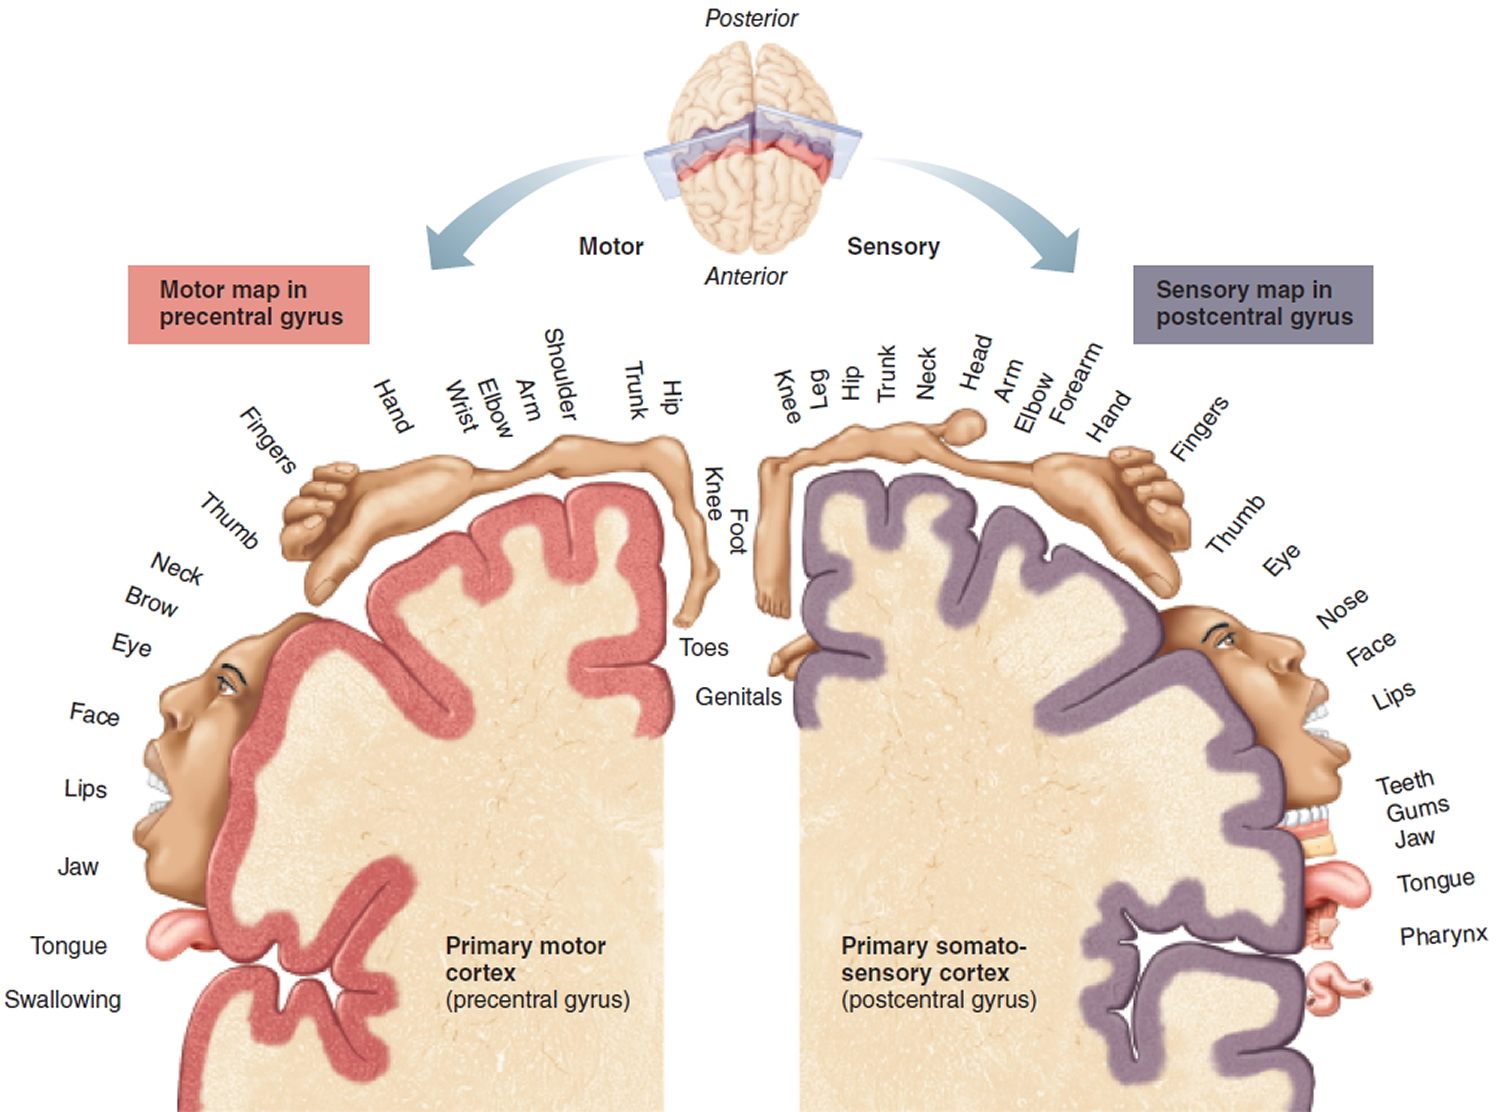 somatosensory and motor cortex of the cerebrum